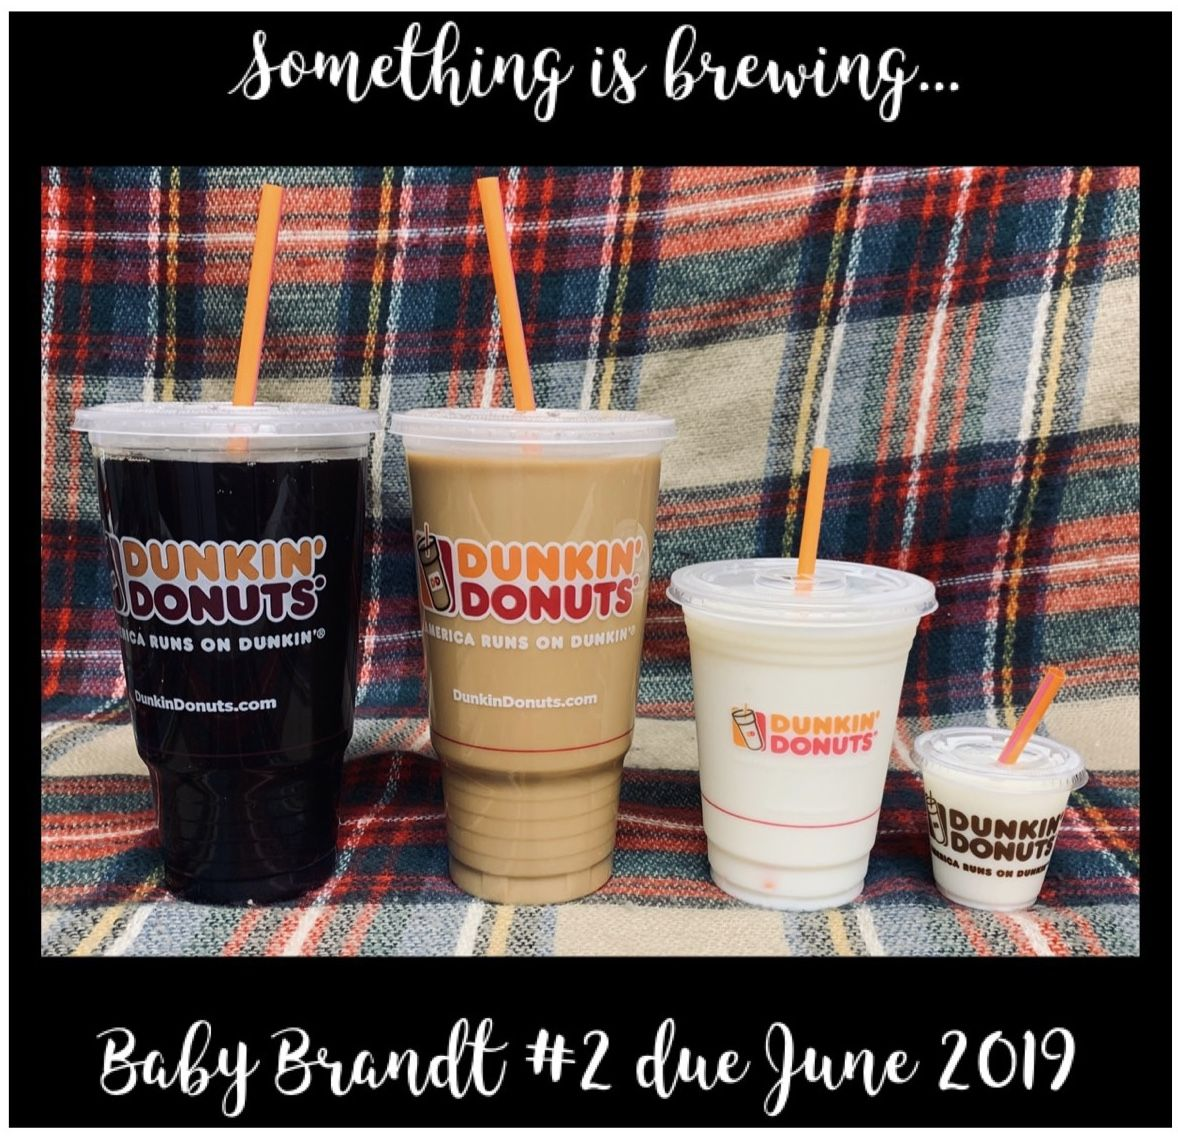 Coffee Baby Announcement Baby Announcement Baby Annoucement Coffee And Donuts